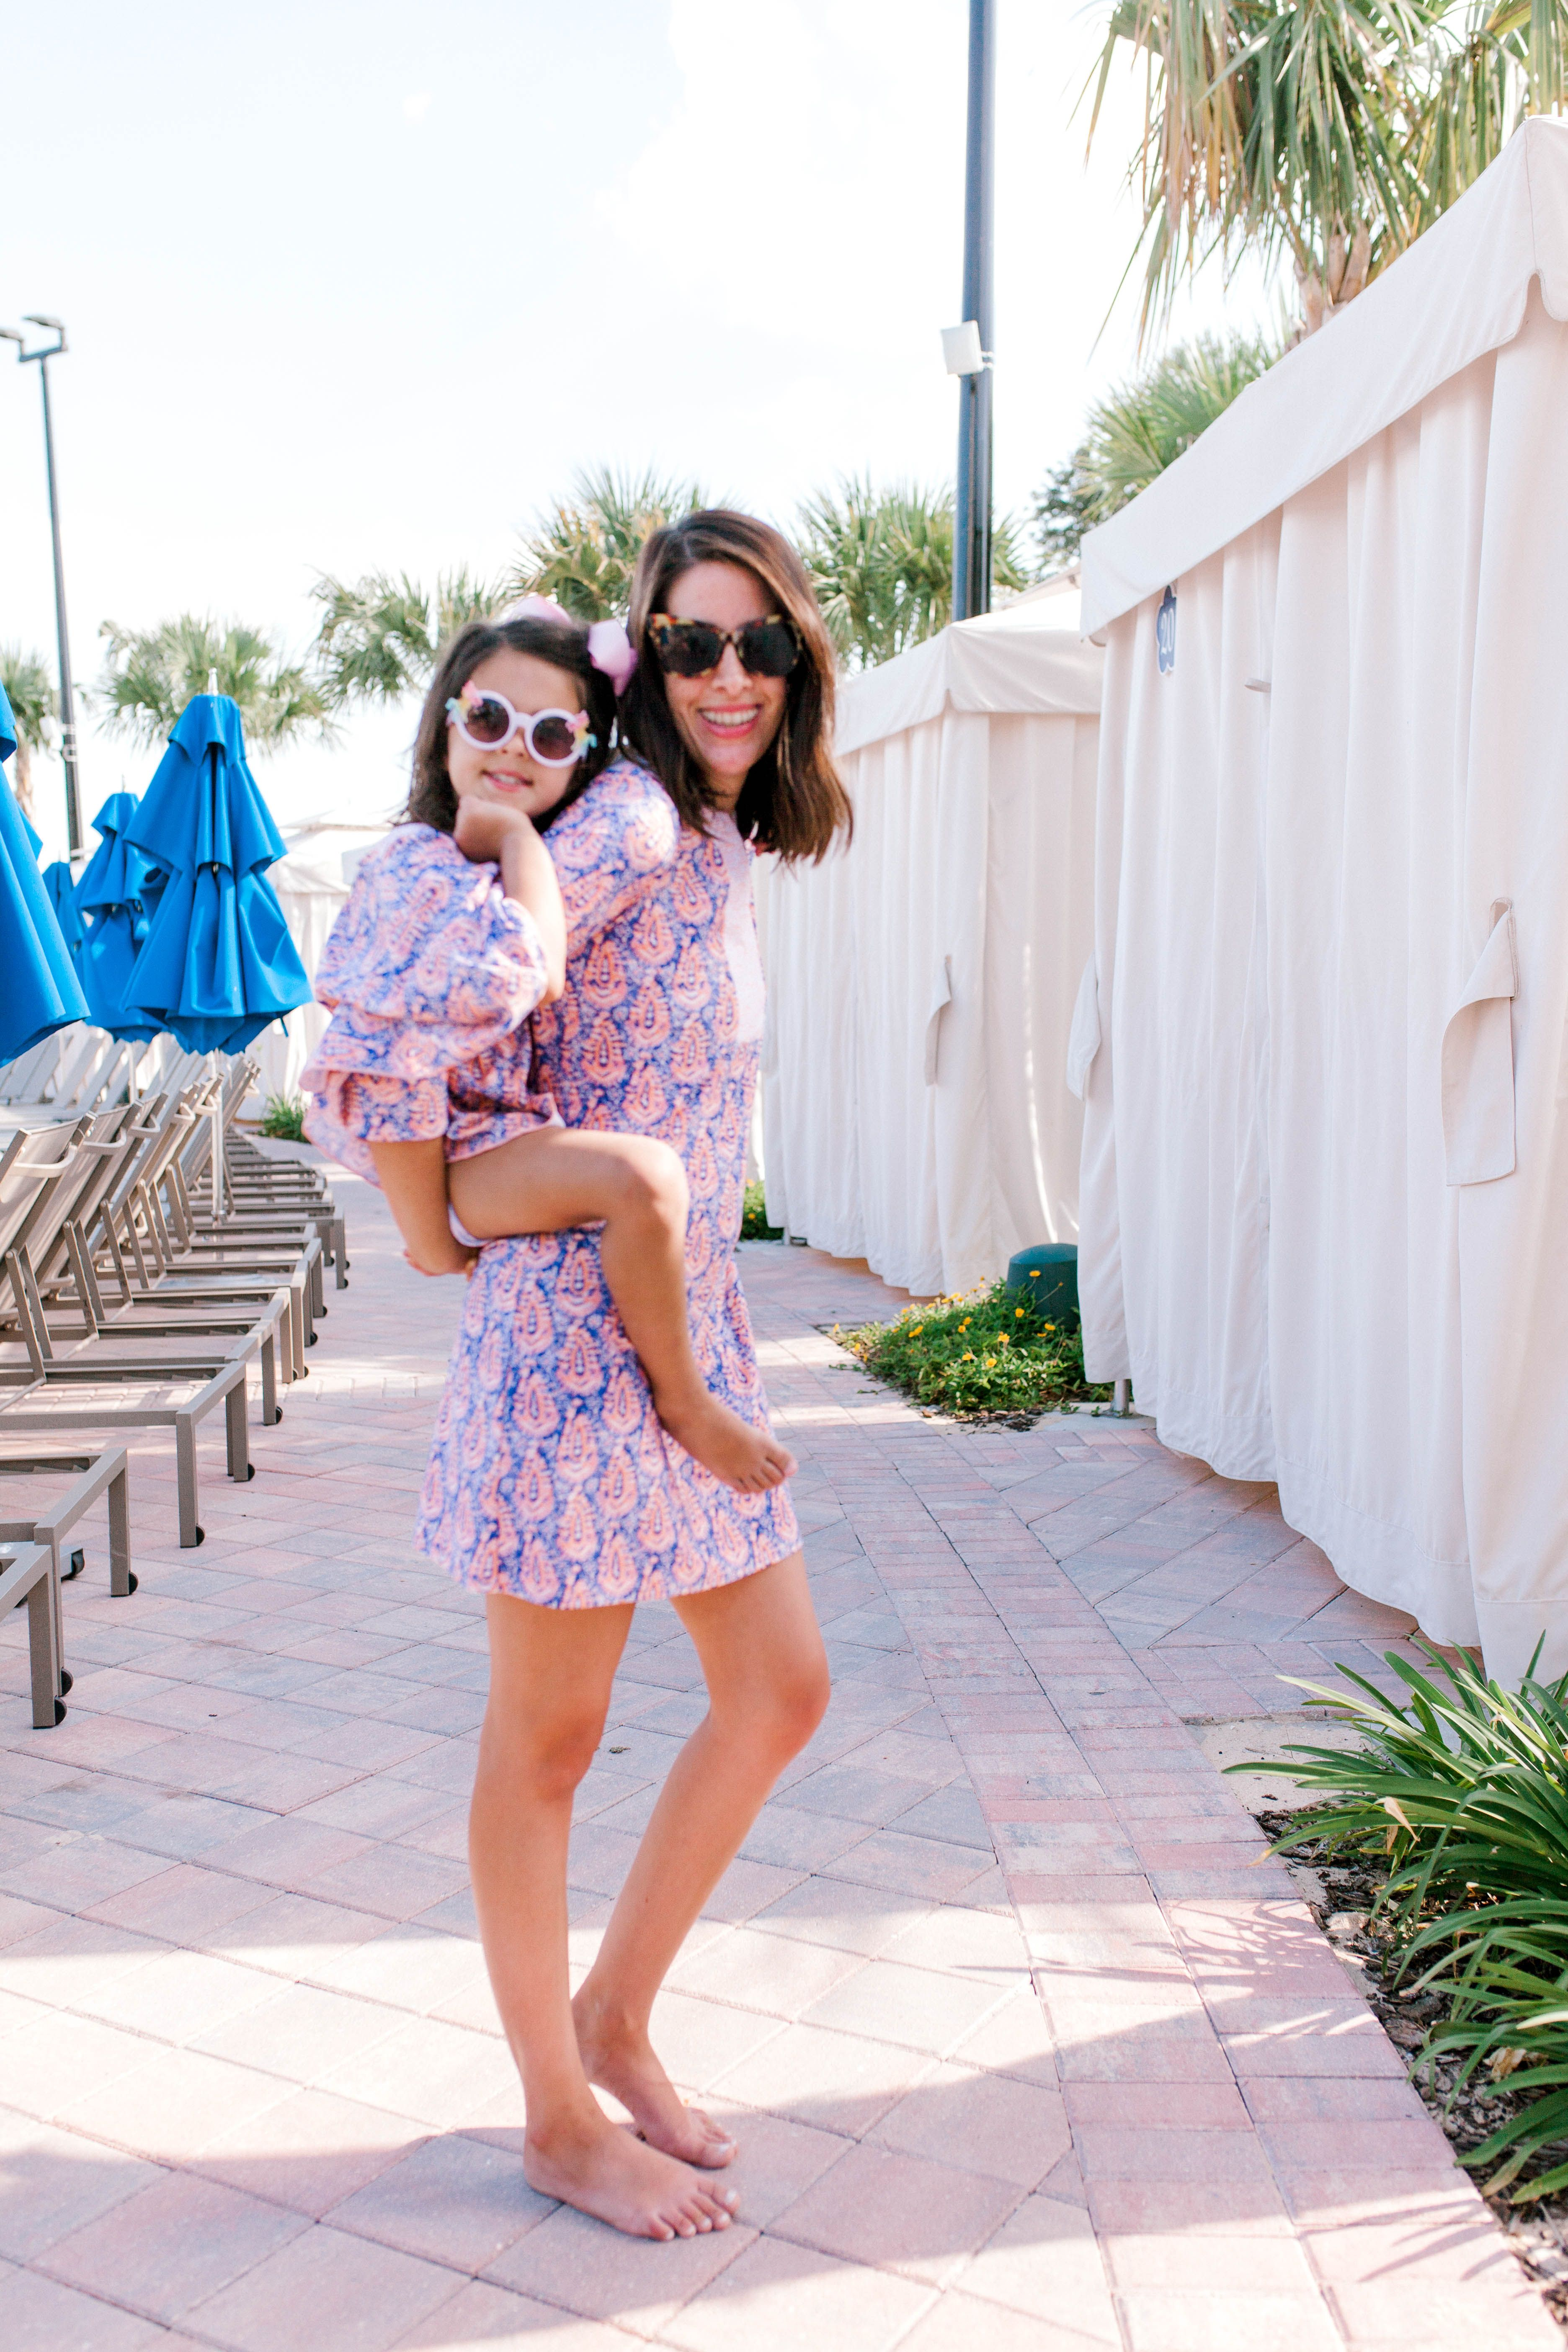 41d68b0cea Our  cabanacrew is too cute to handle this summer!  southernmamaguide and  her mini